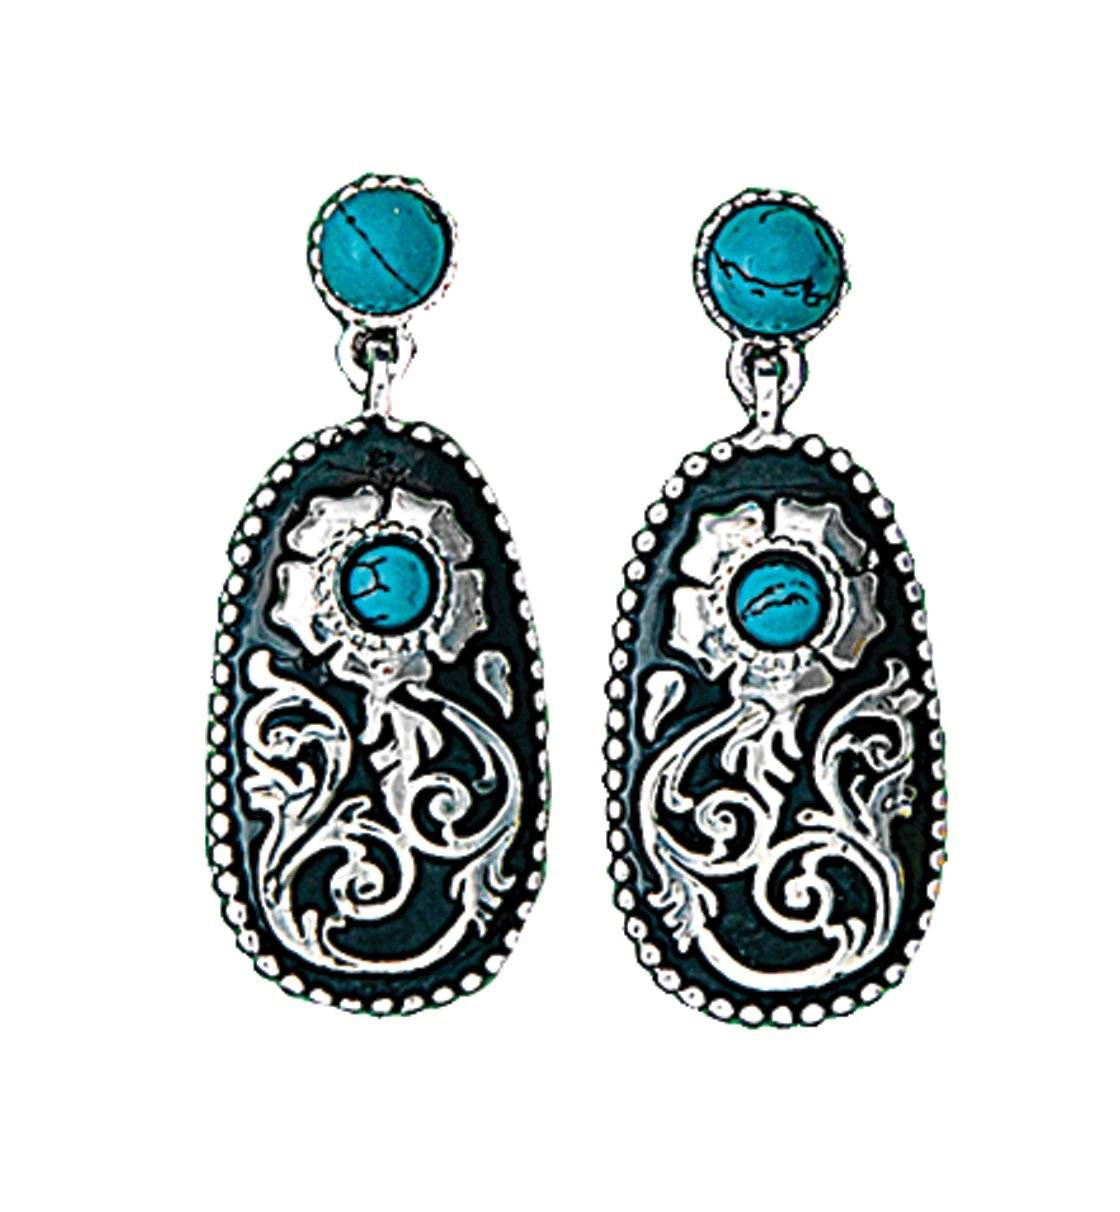 Montana Silversmiths Turquoise Posy Drop Earrings